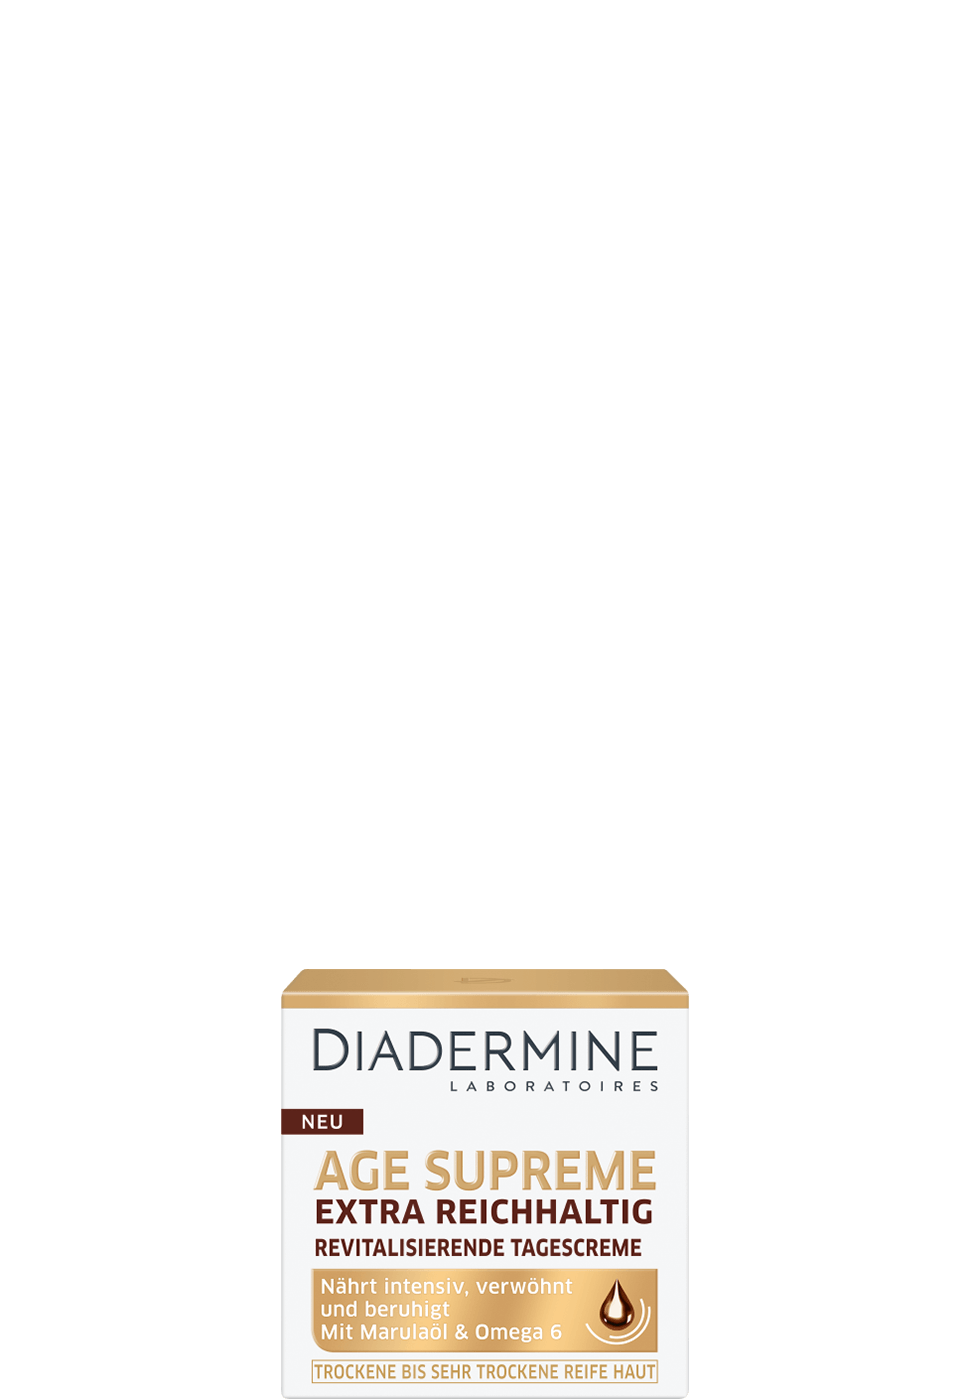 diadermine_at_age_supreme_extra_reichhaltig_tagescreme_970x1400